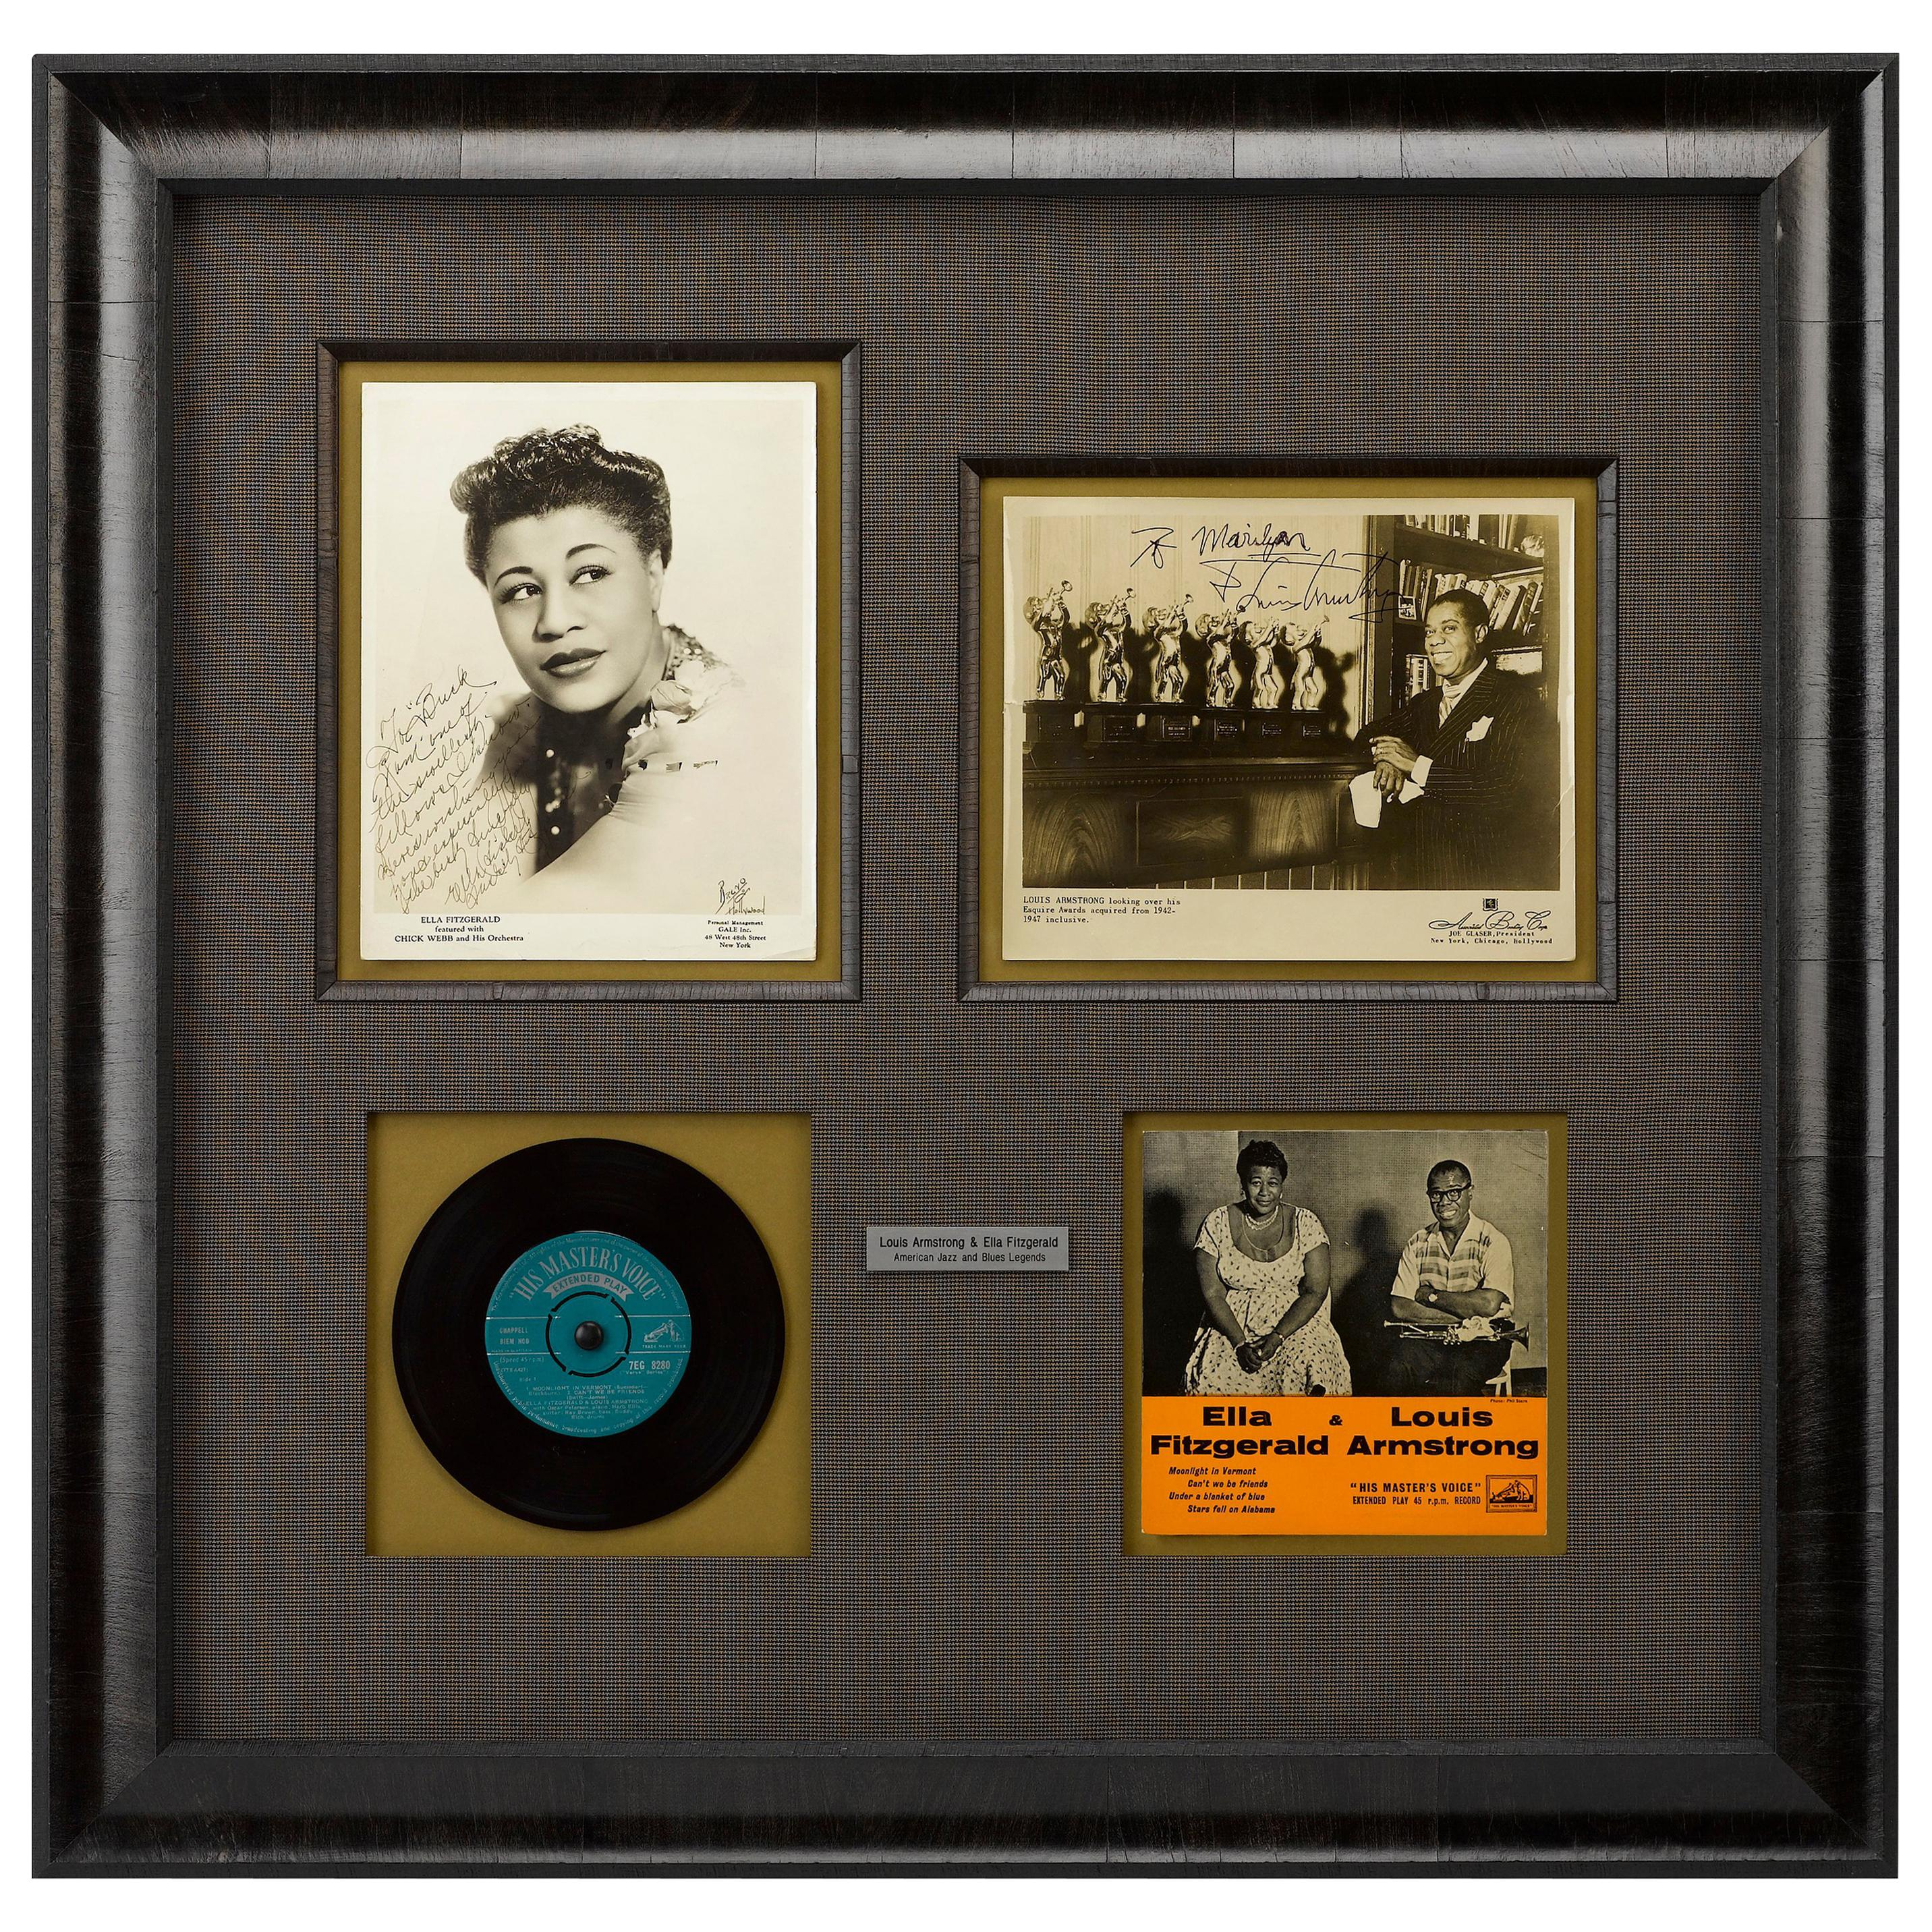 Louis Armstrong and Ella Fitzgerald Signed Photographs, American Jazz Legends